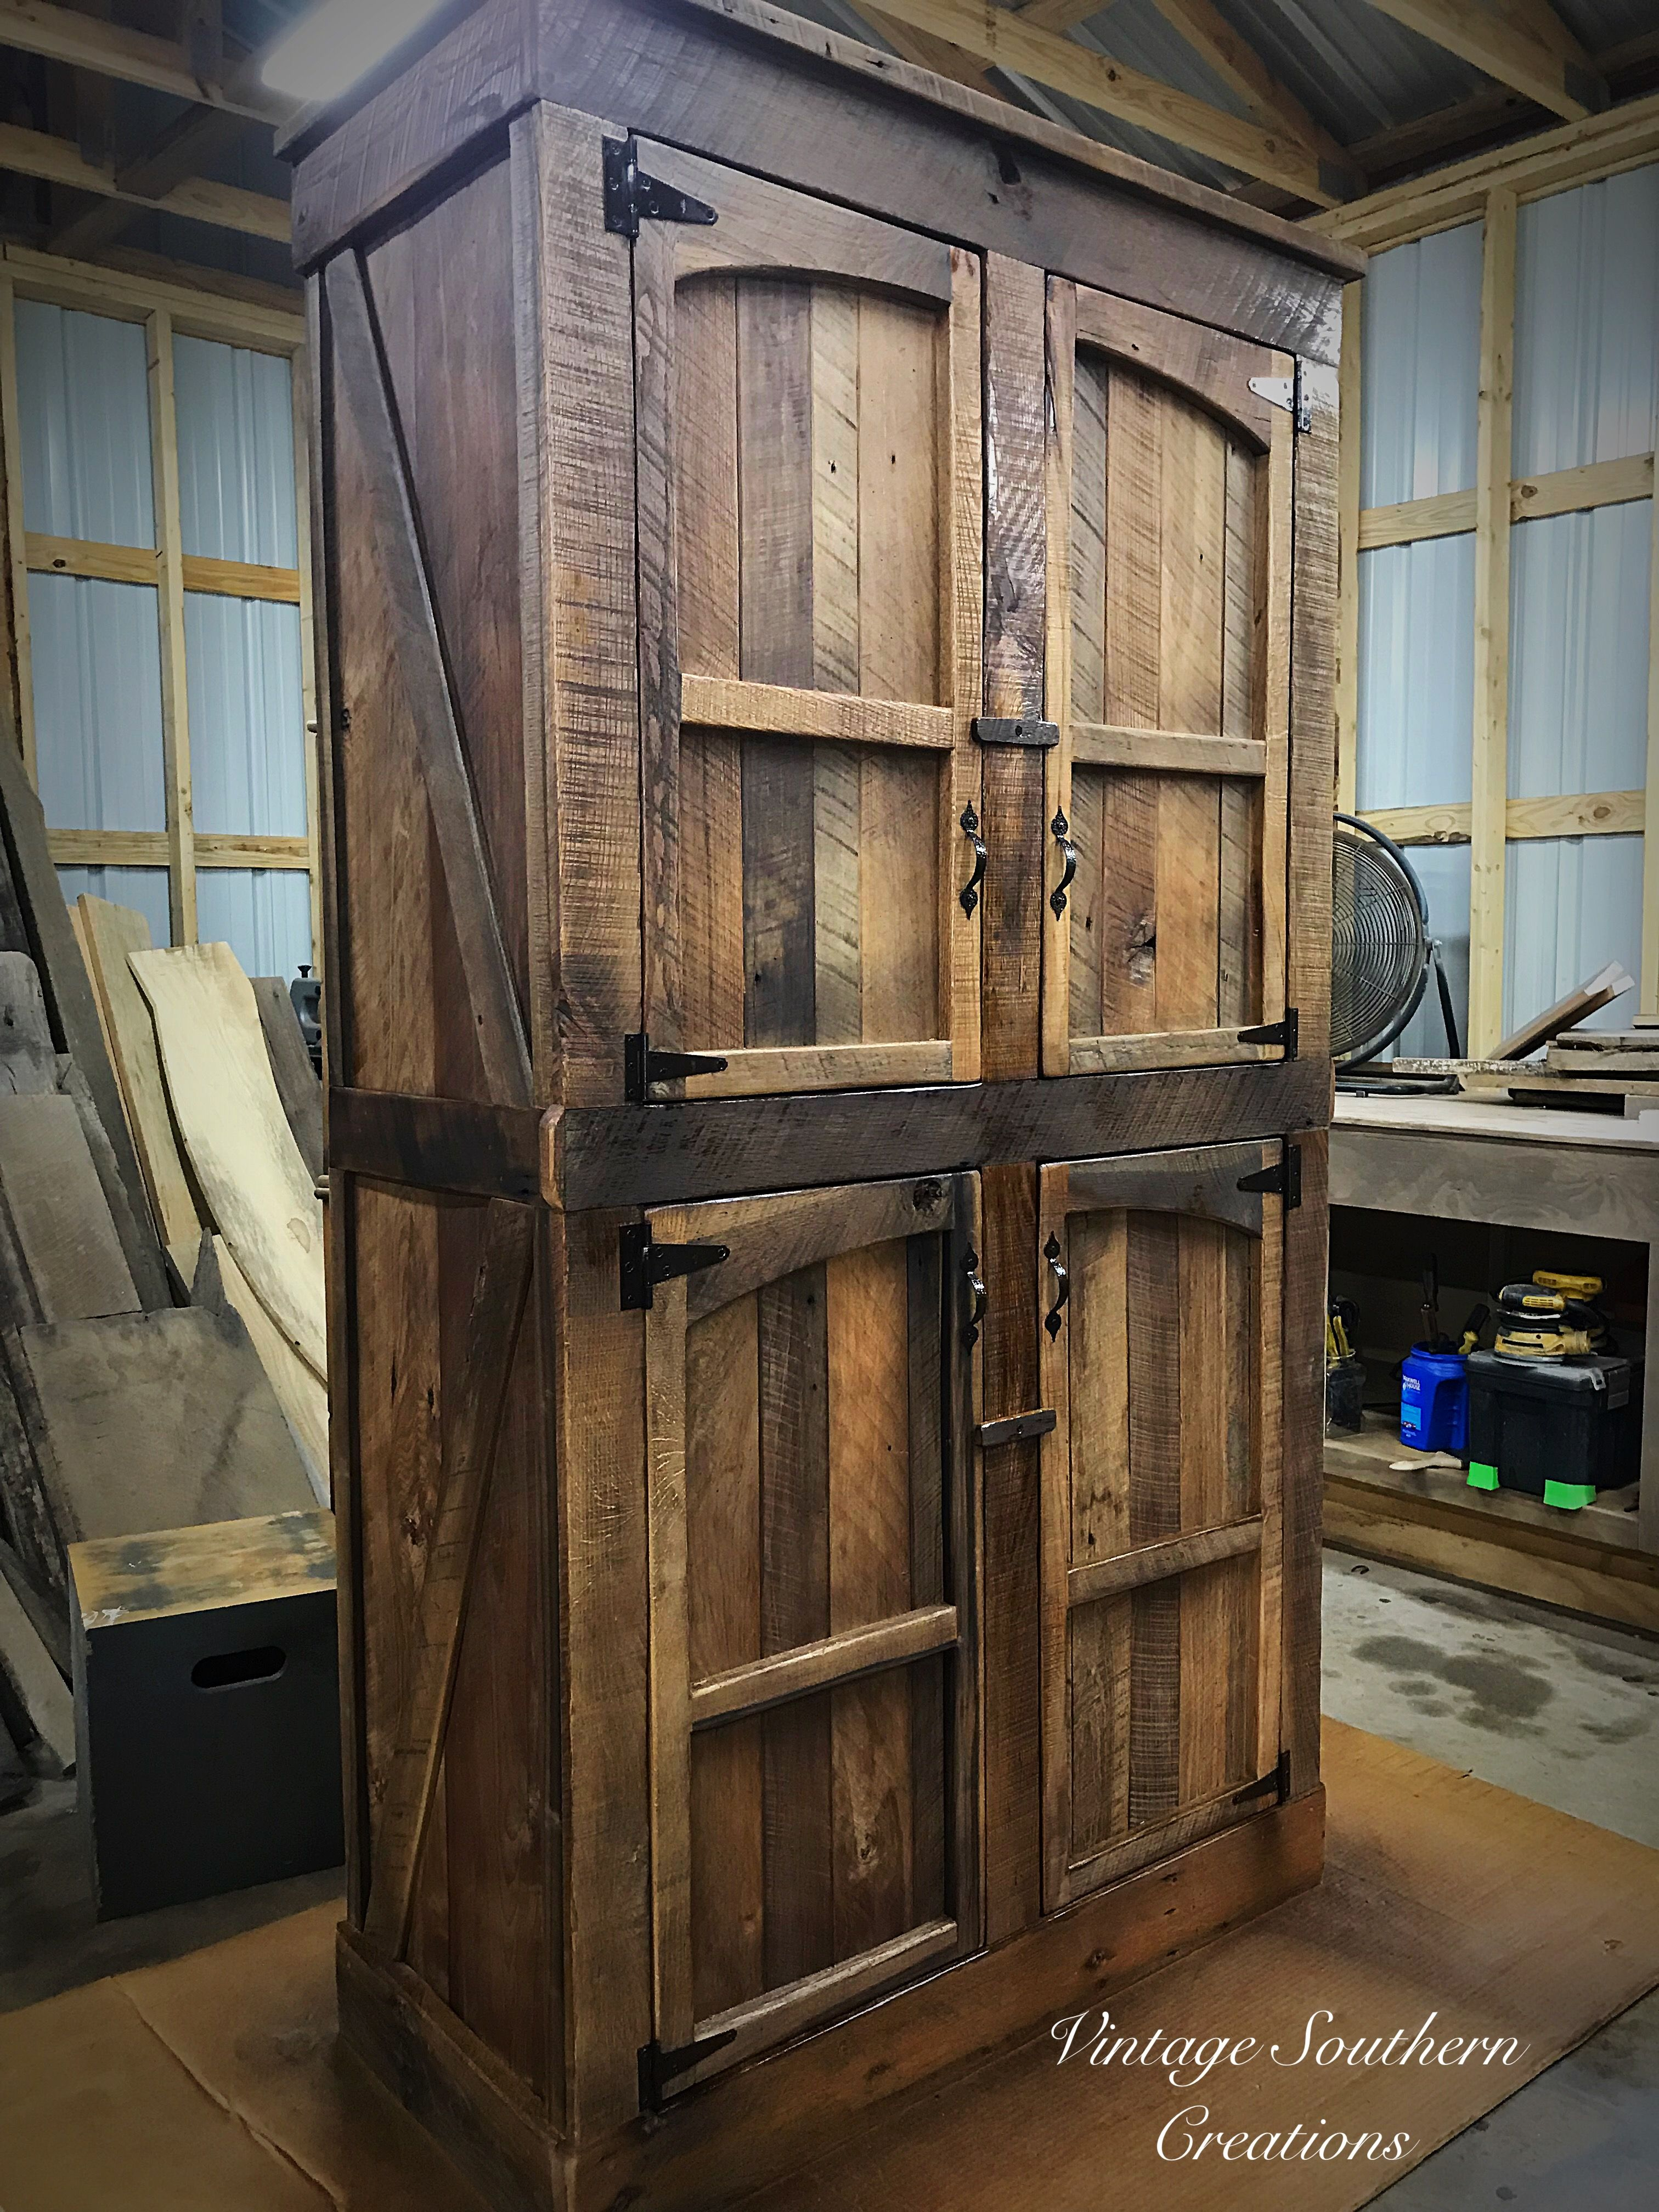 Farmhouse Pantry Built From Reclaimed Barn Wood By Vintage Southern Creations Reclaimed Barn Wood Barn Wood Rustic Pantry Cabinets